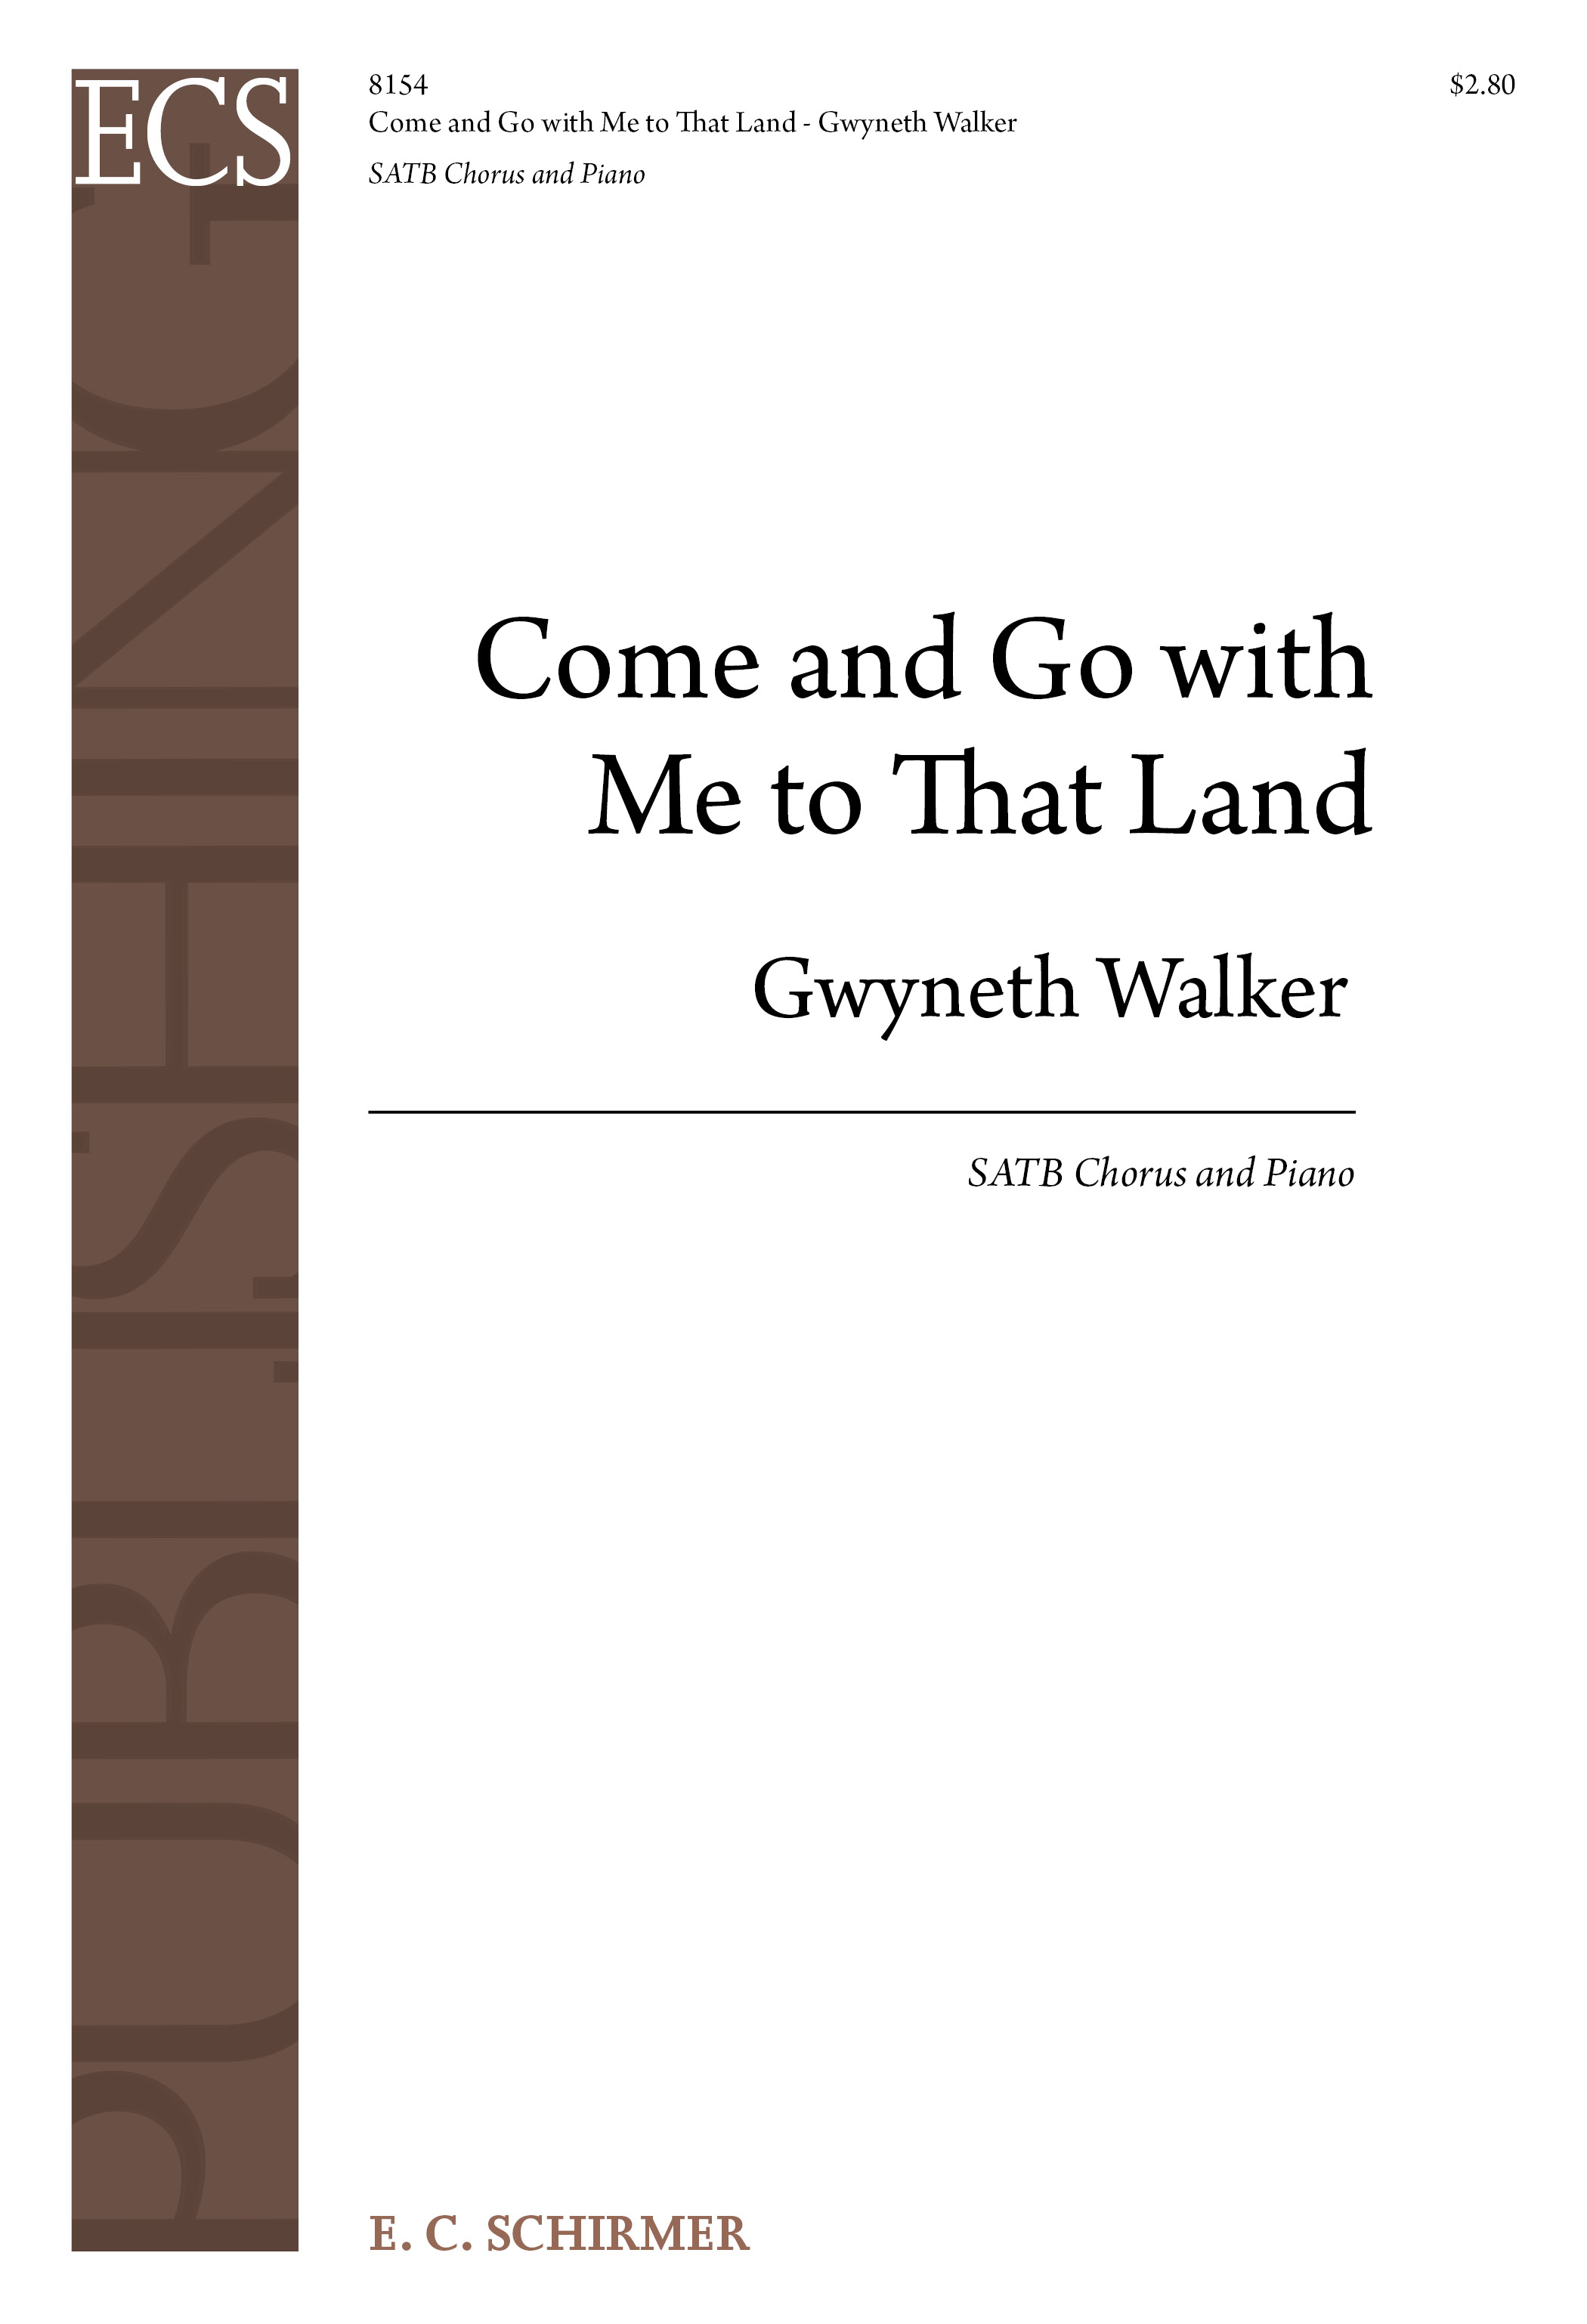 Gospel Songs: Come and Go with Me to That Land : SATB : Gwyneth Walker : Gwyneth Walker : Sheet Music : 8154